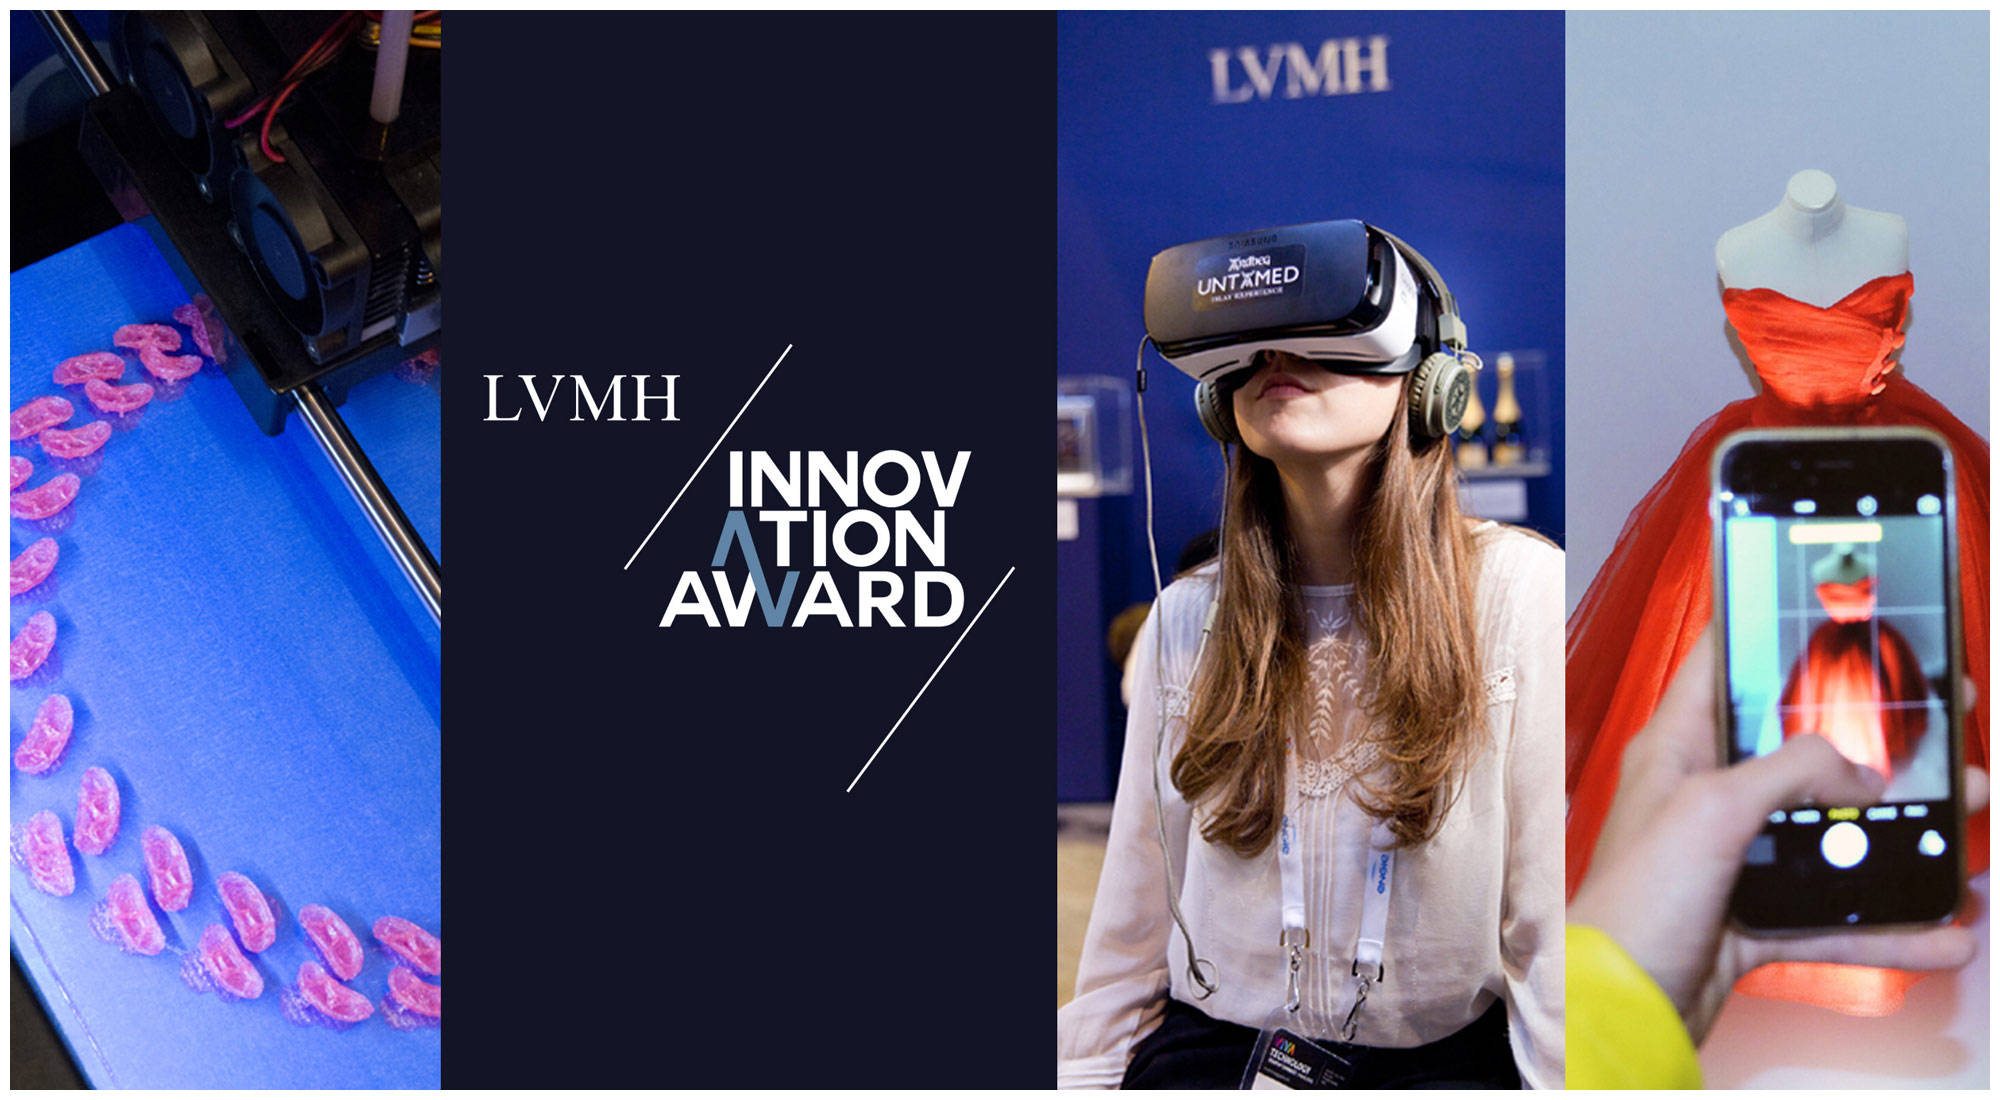 LVMH Innovation Award – V-Cult remporte le prix du public